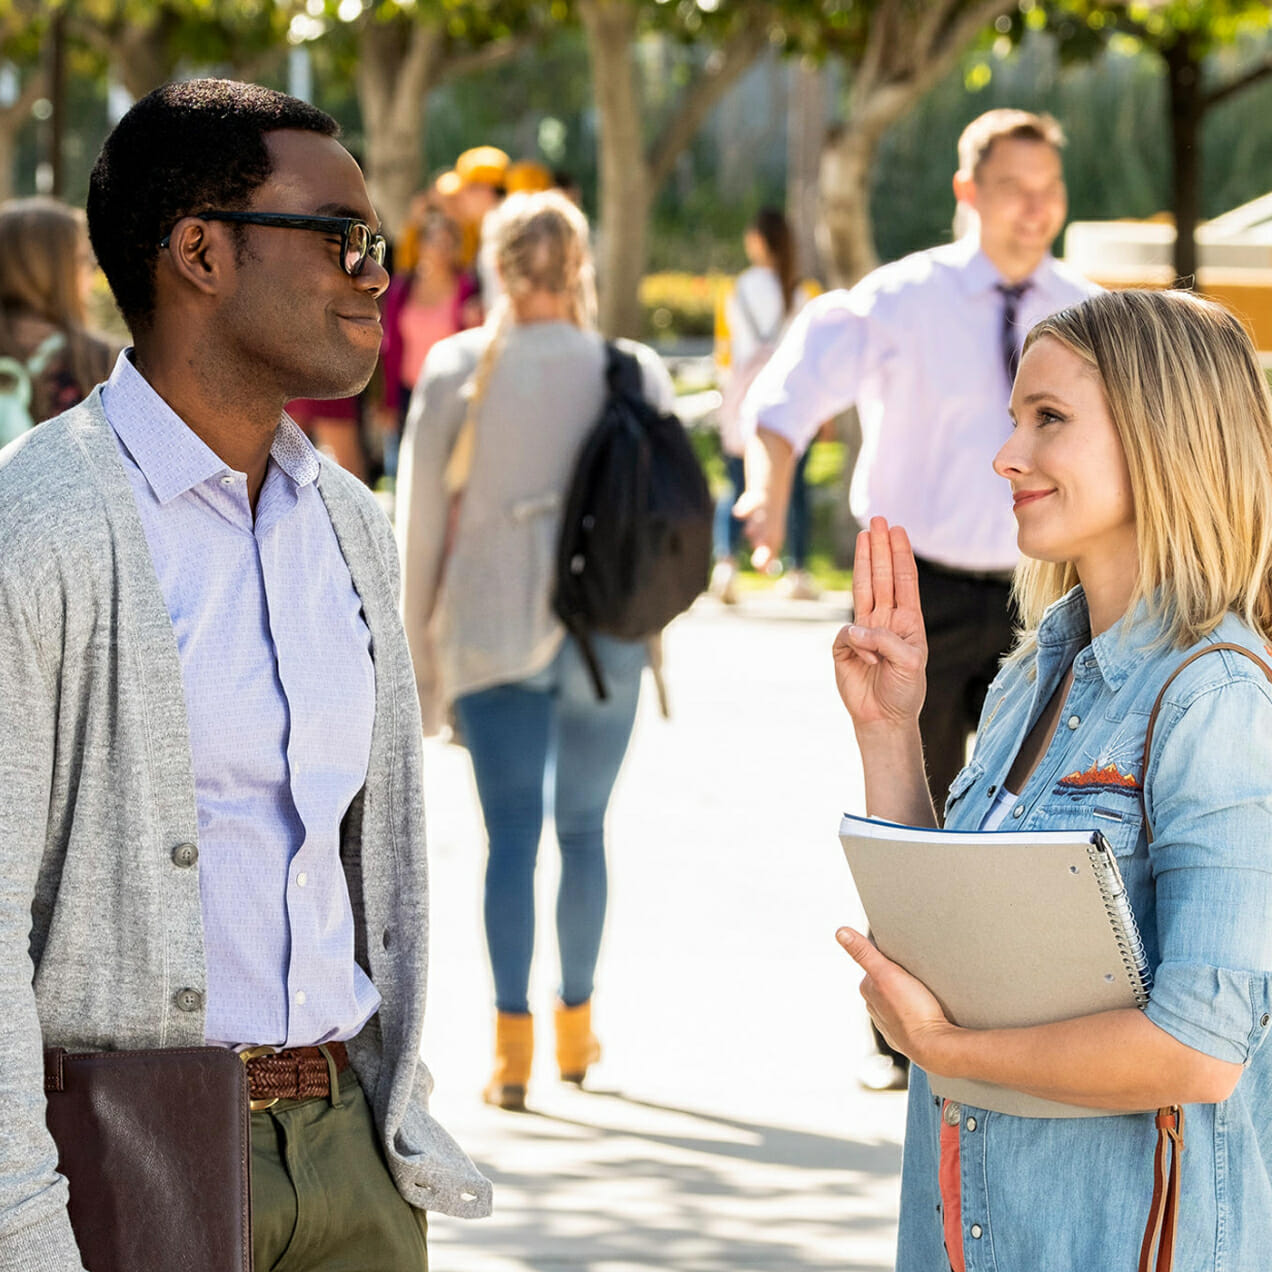 The Good Place man repeller